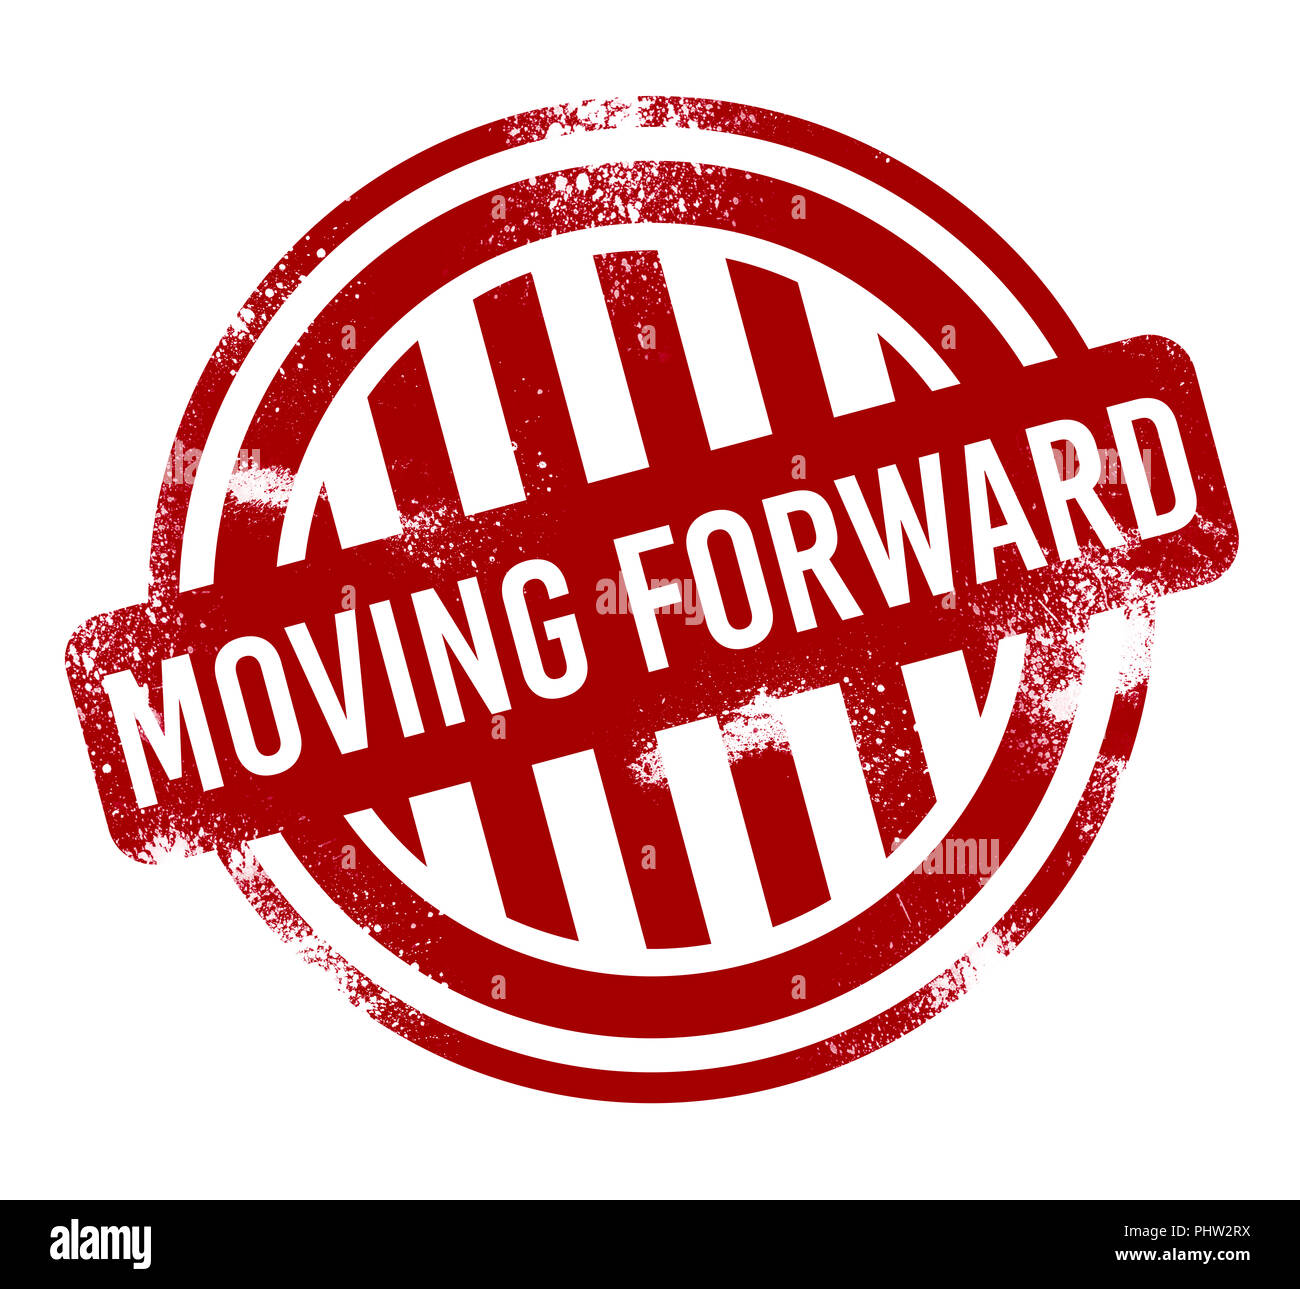 Moving forward - red grunge button, stamp - Stock Image